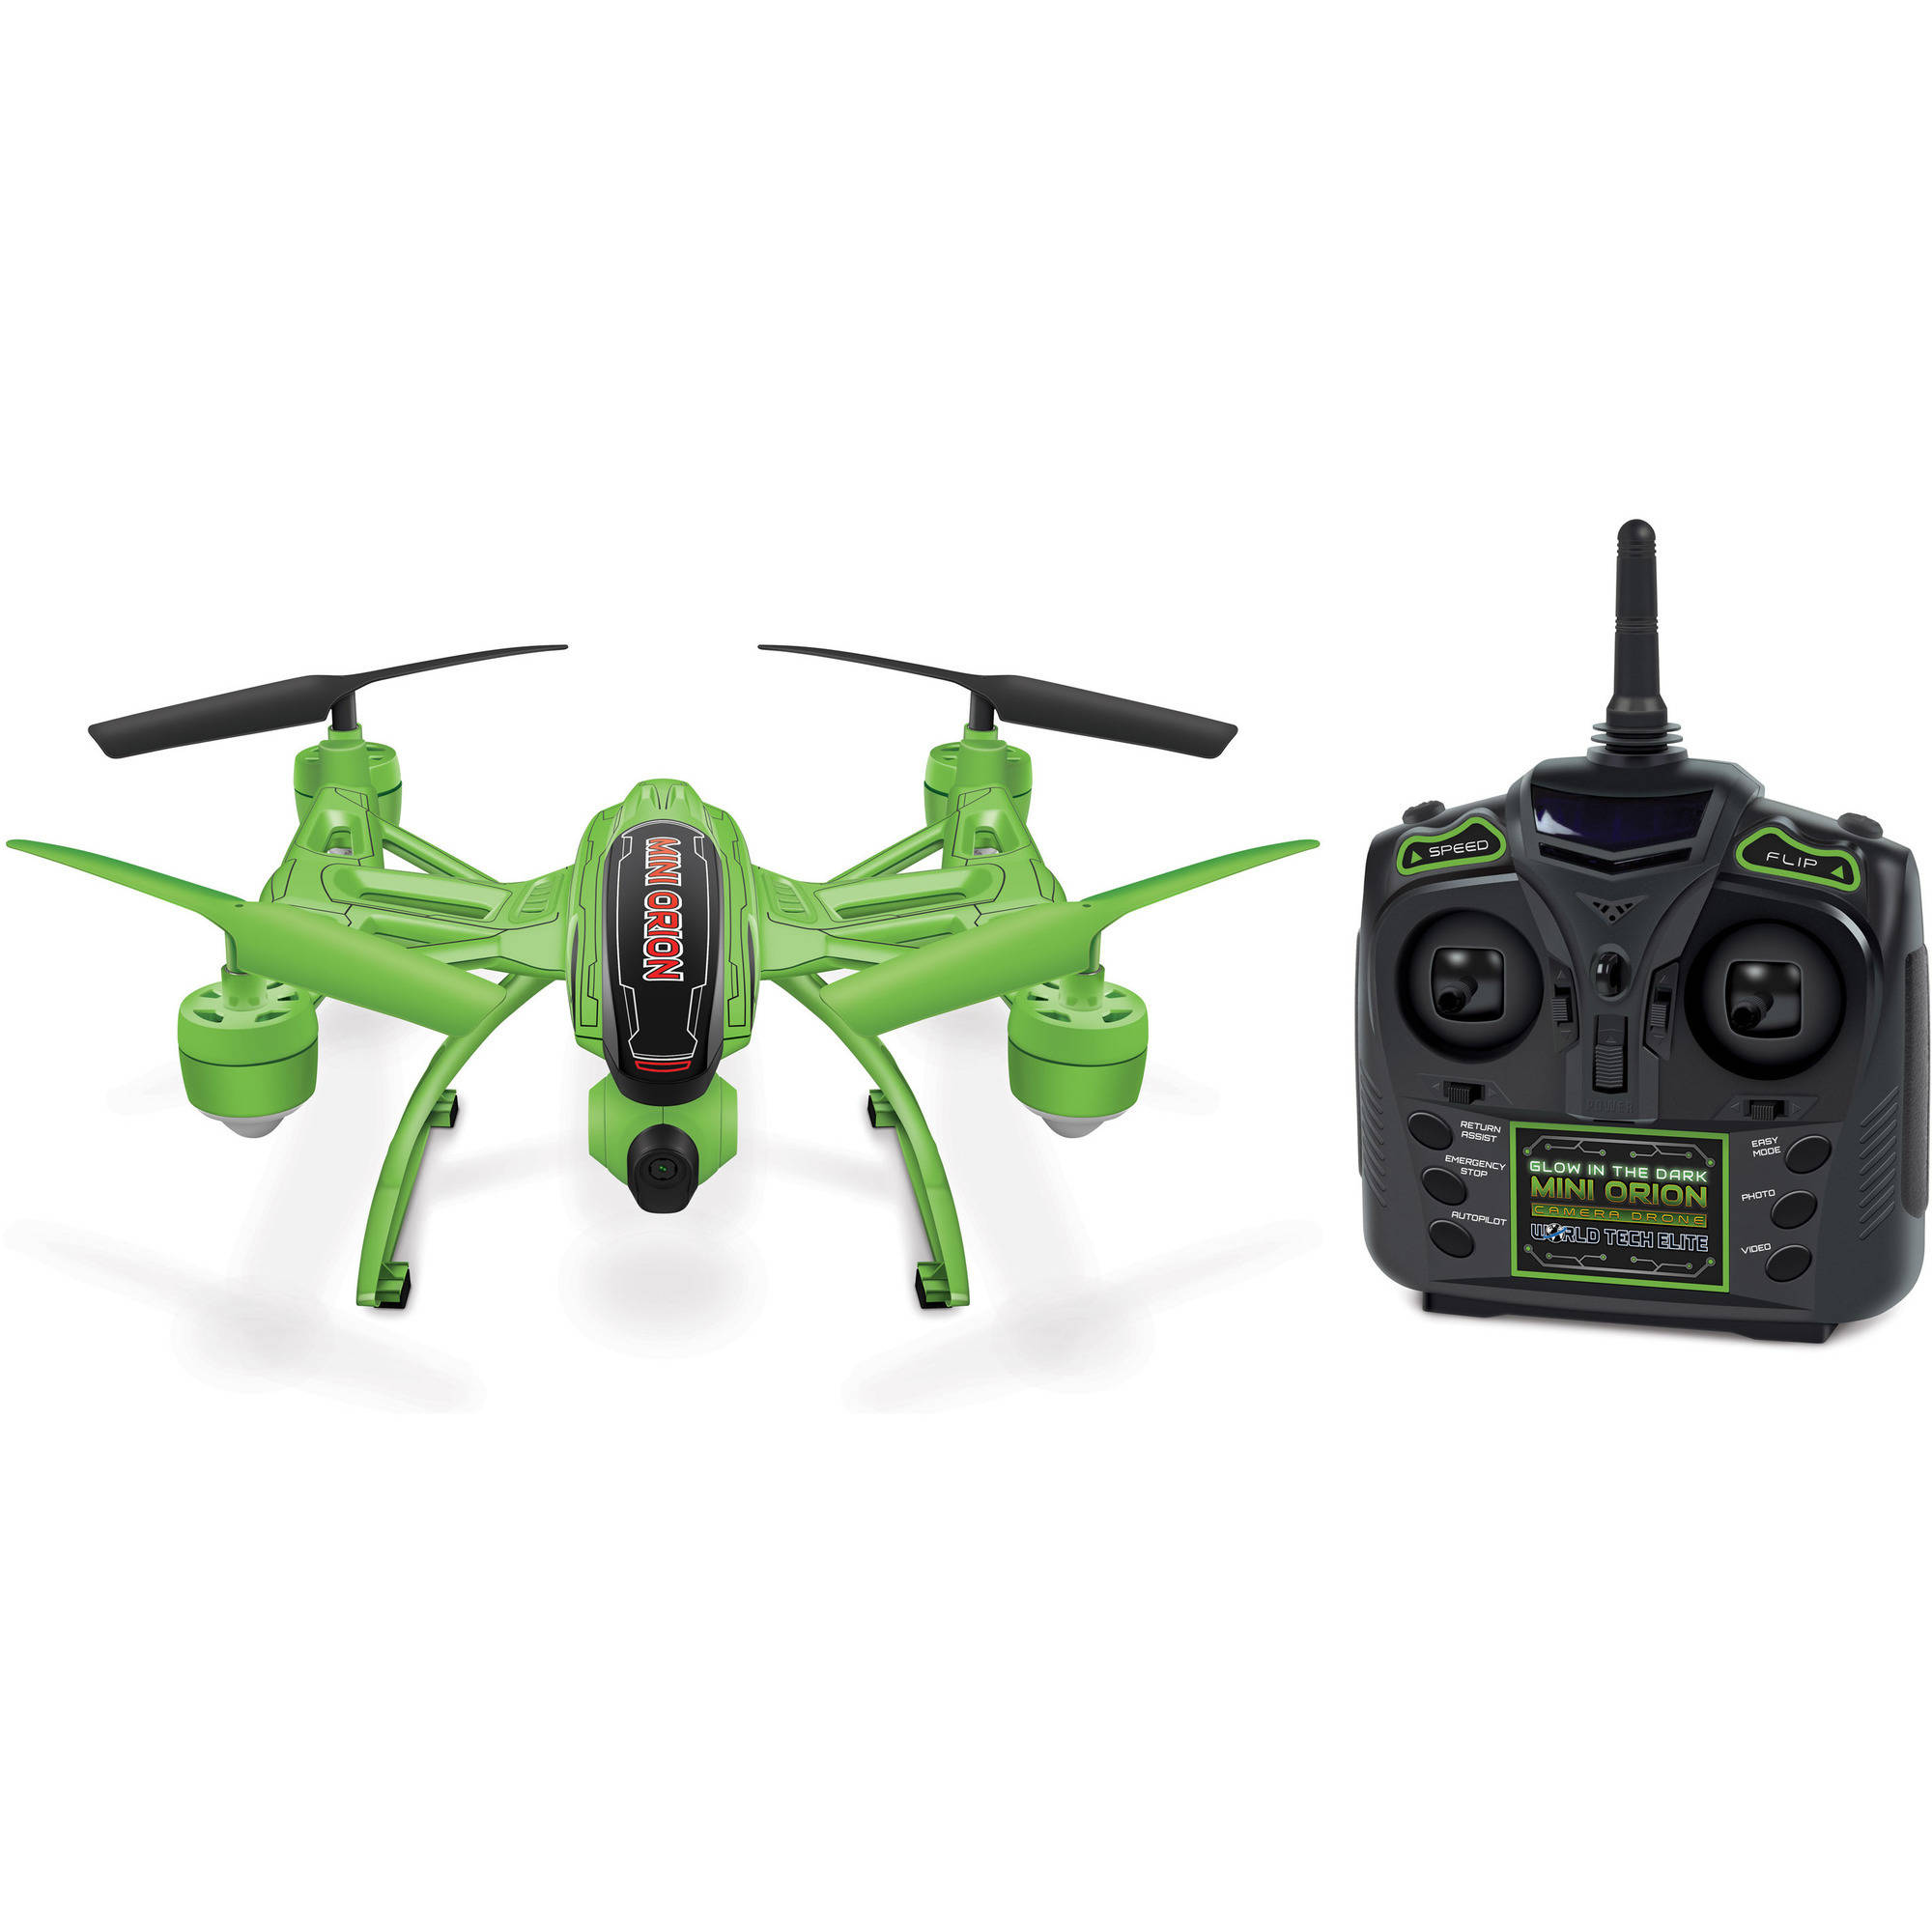 Elite Mini Orion Glow-in-the-Dark 2.4GHz 4.5-Channel HD R C Camera Drone by World Tech Toys